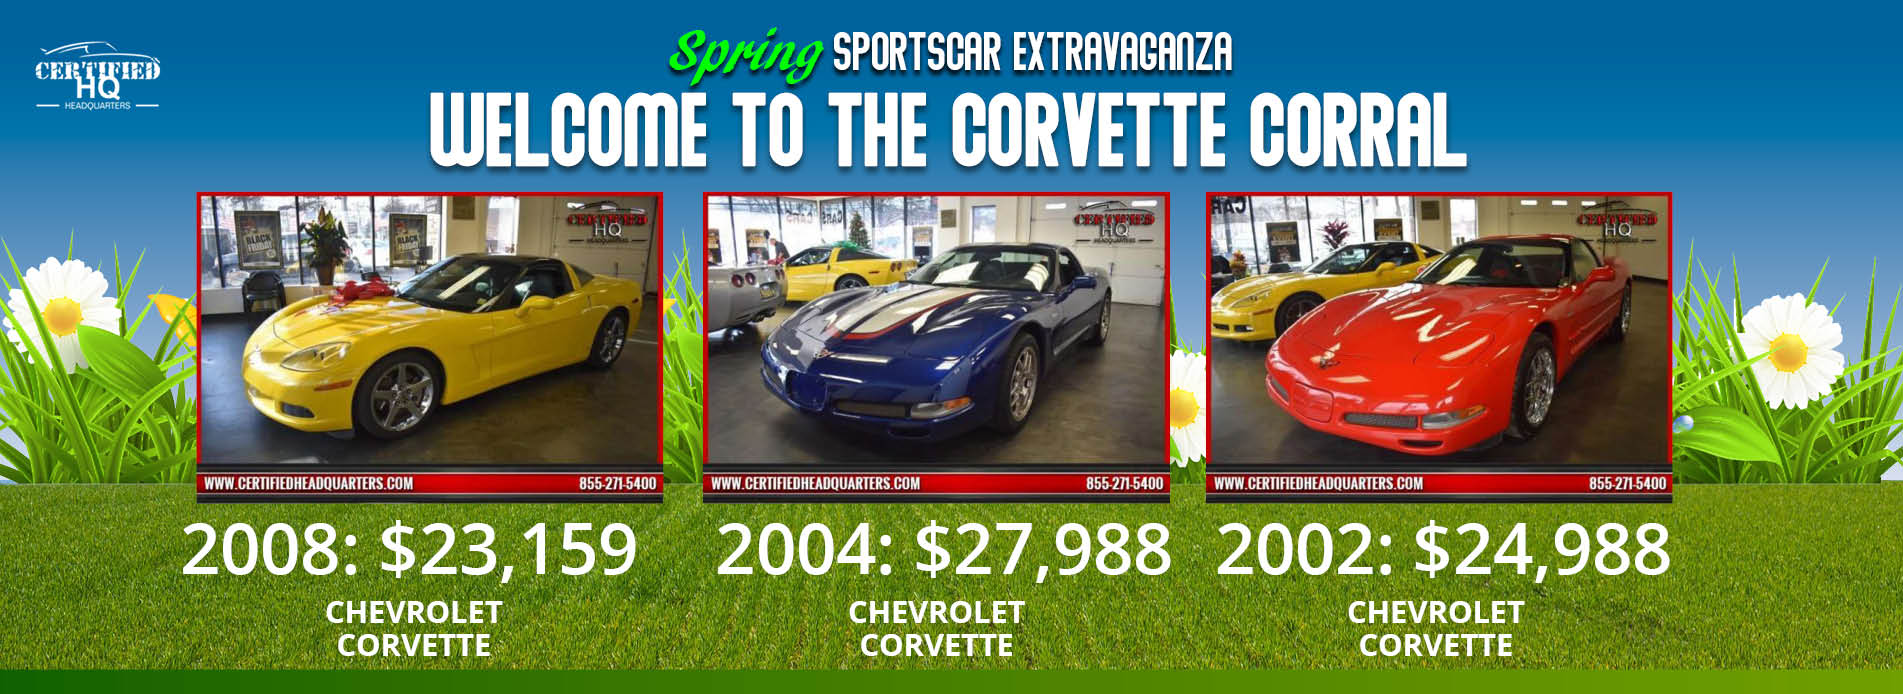 Corvette Specials in Long Island, NY